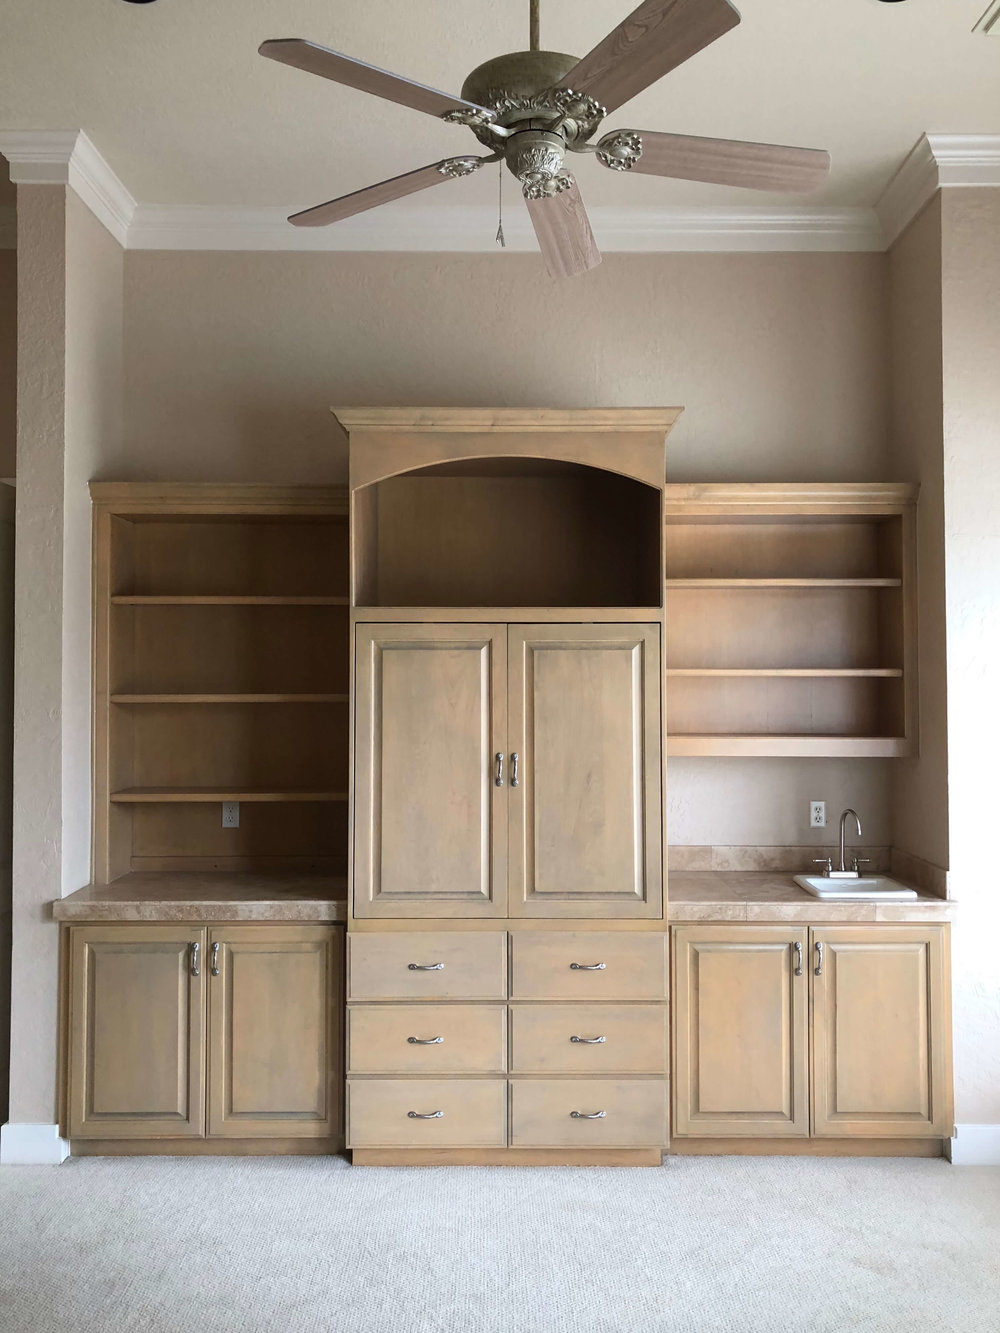 BEFORE - Master bedroom built in cabinetry wall with armoire for older model box style tv